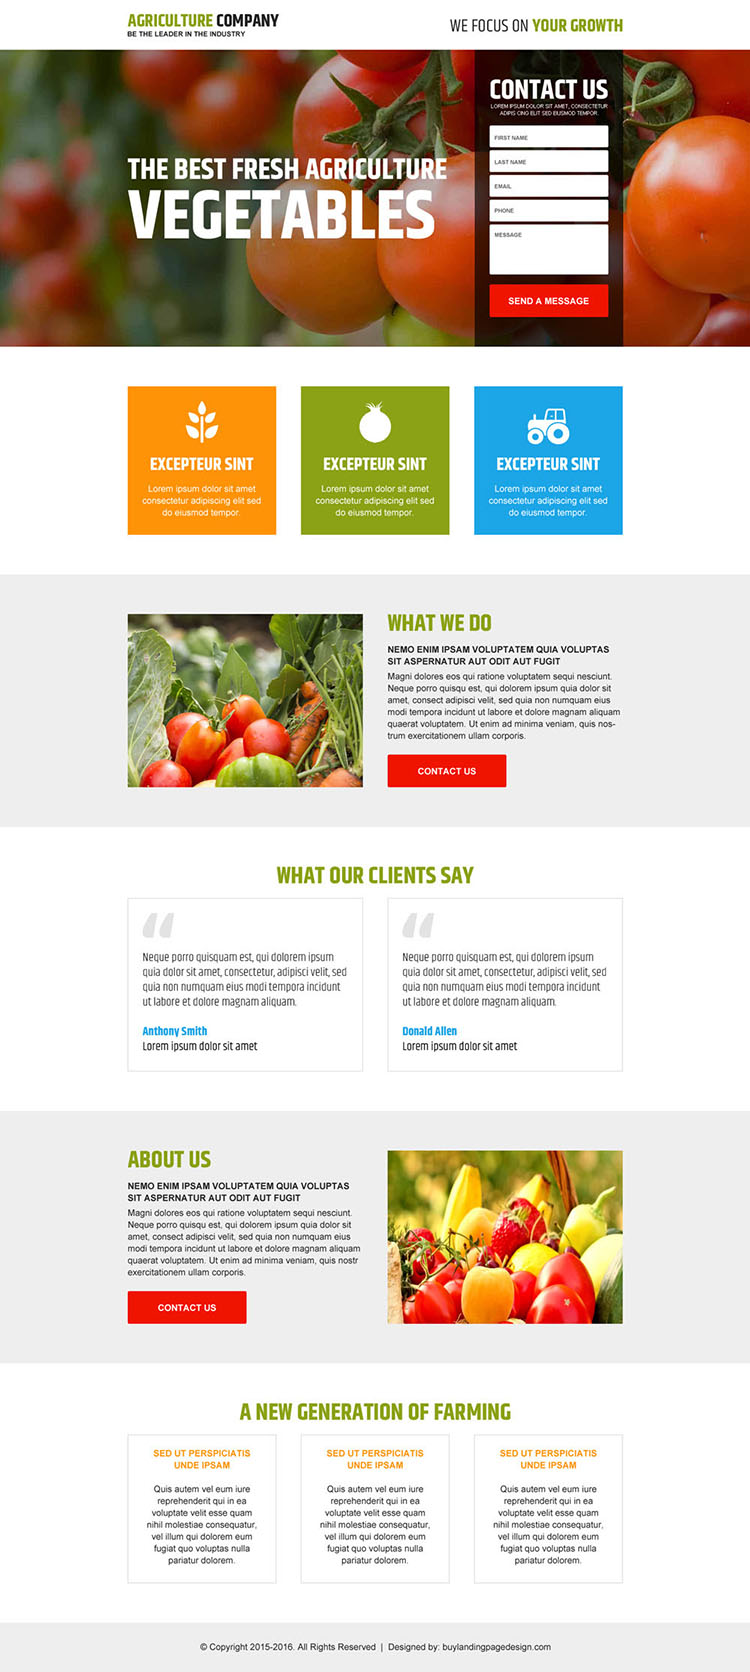 agriculture company responsive lead capturing landing page design